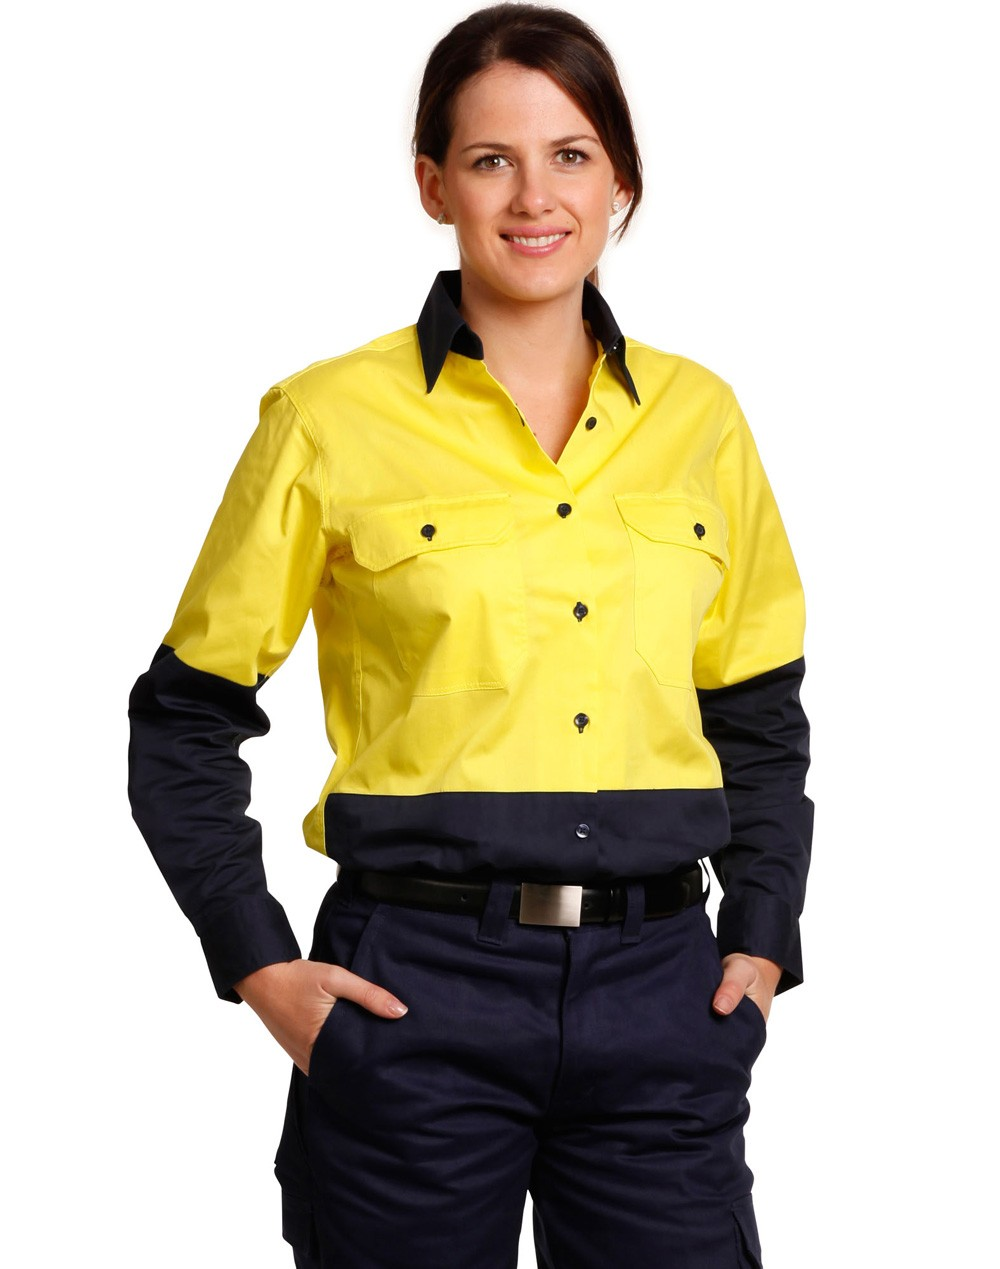 Winning Spirit Ladies' High Visibility Cool-Breeze Cotton Twill Safety Shirt